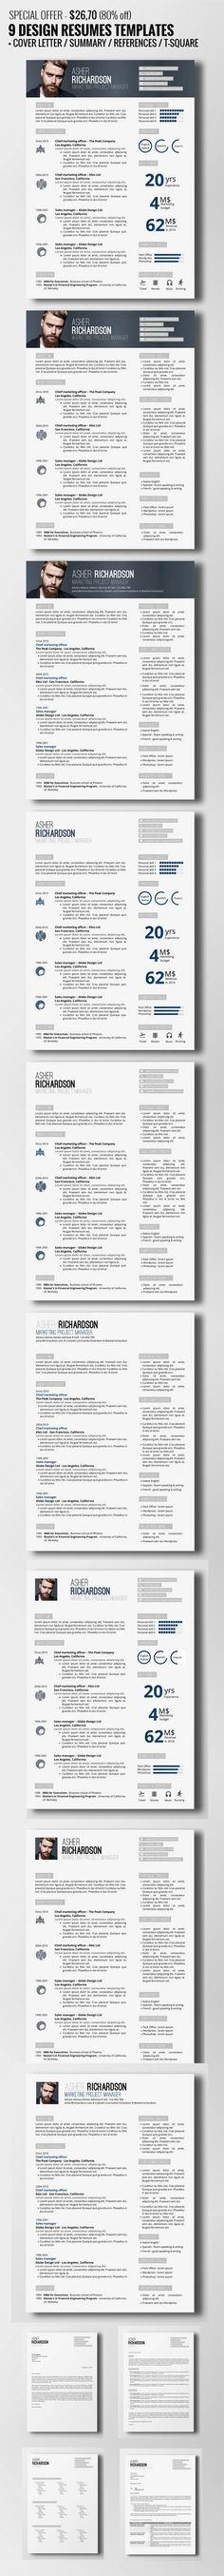 435 best Resume images on Pinterest Resume design, Design resume - cover letter samples for resume